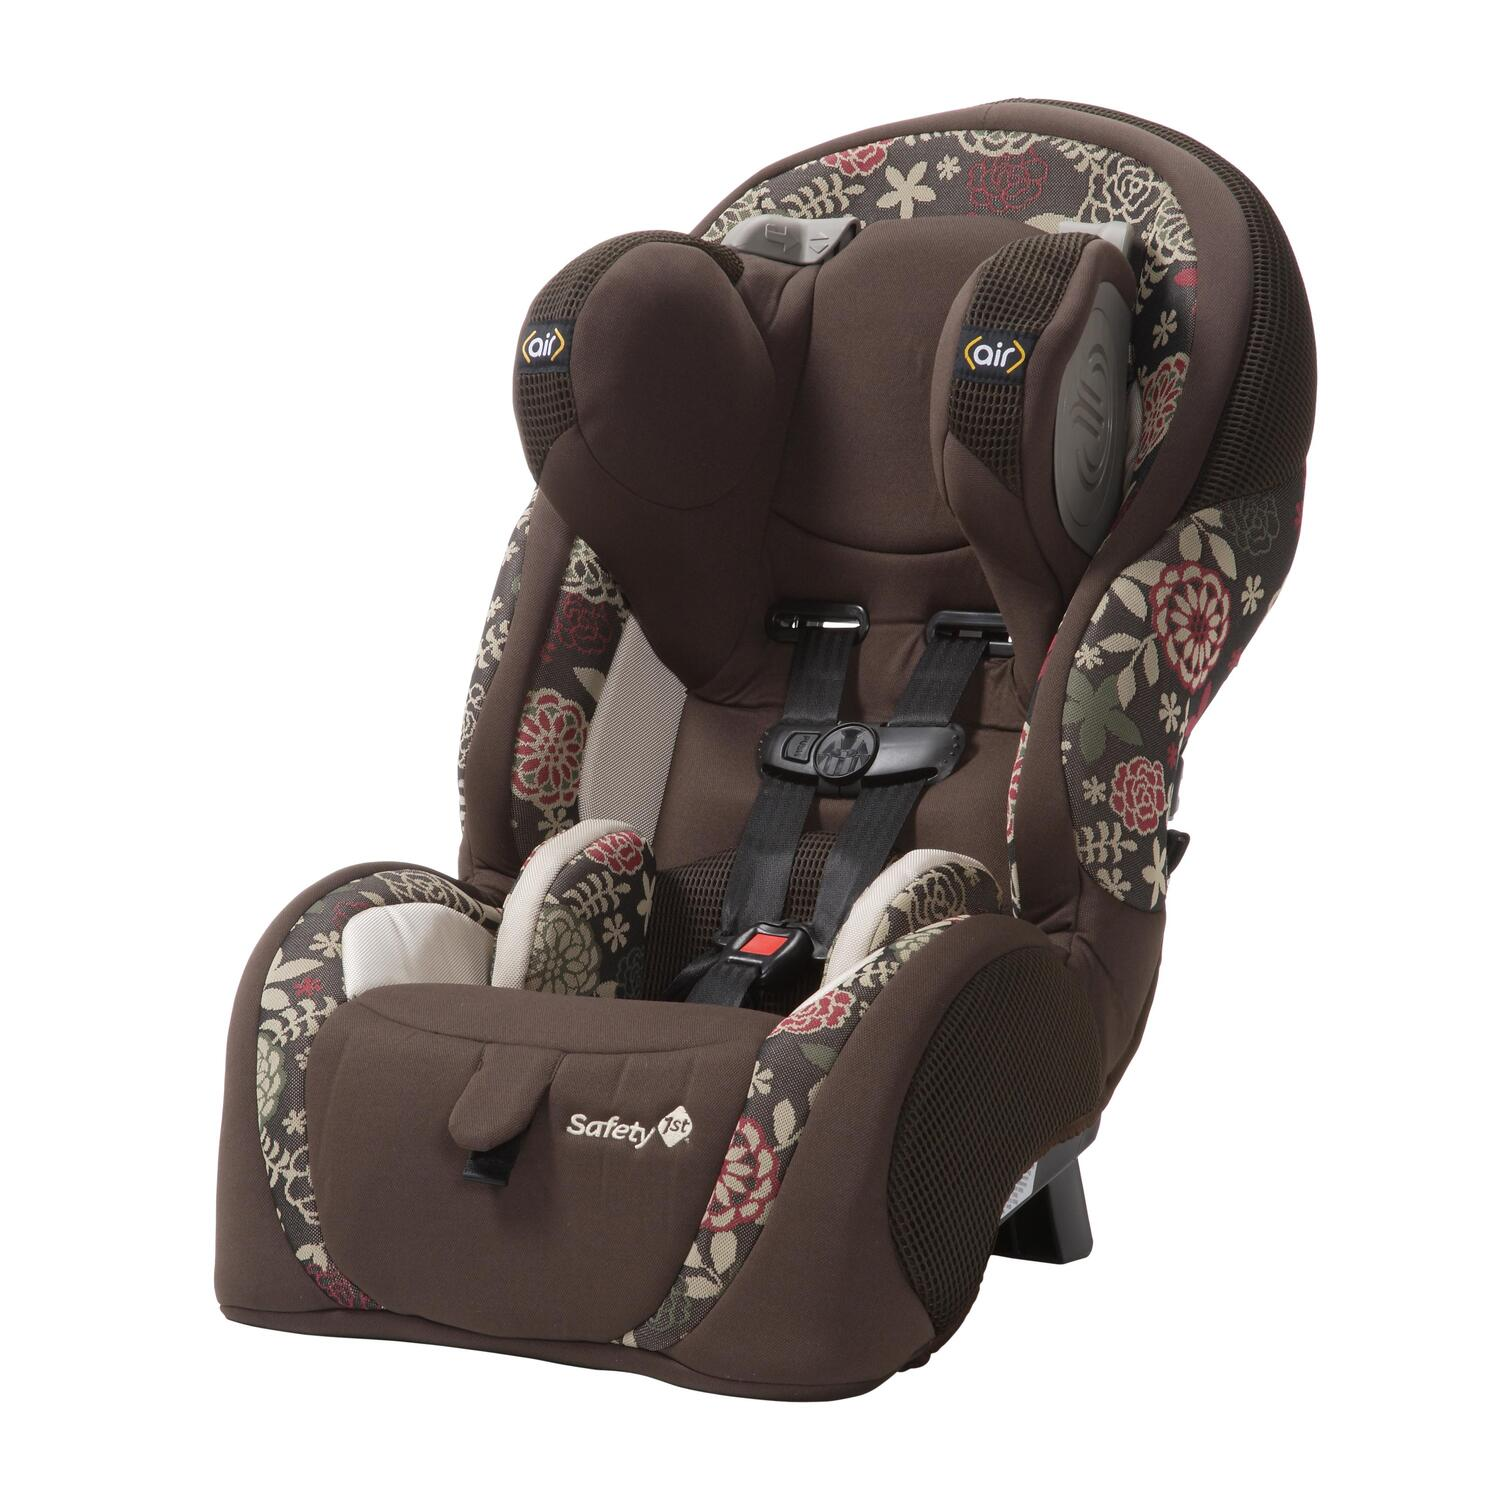 safety 1st safety 1st complete air 65 convertible car seat sugar spice by oj commerce. Black Bedroom Furniture Sets. Home Design Ideas